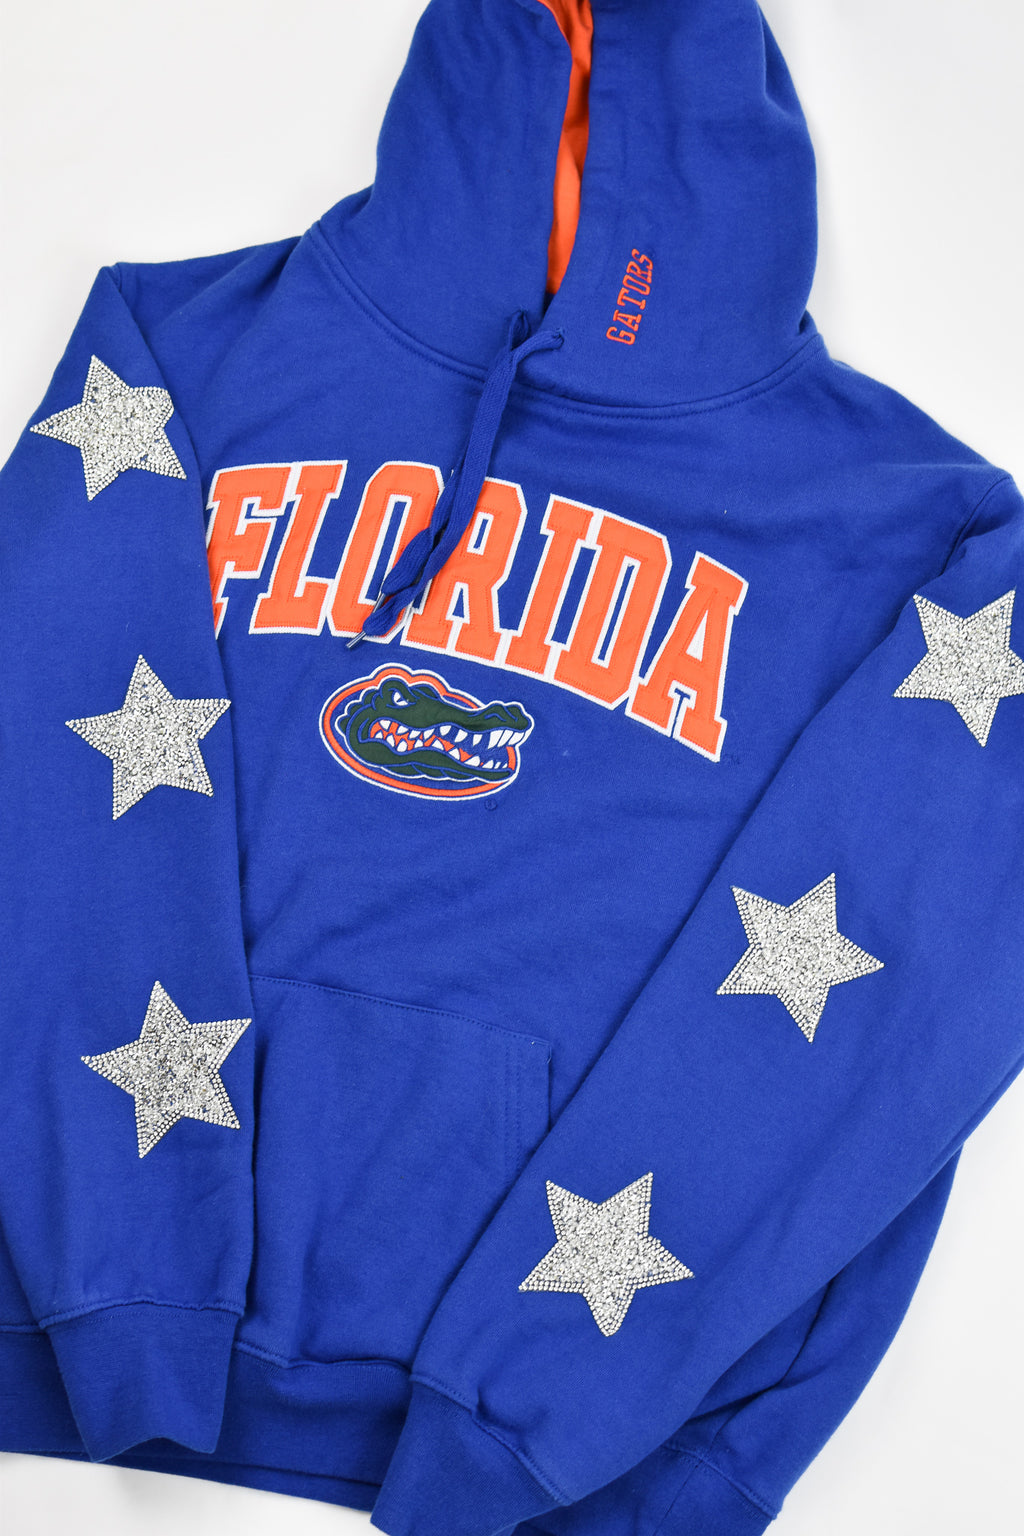 Upcycled VINTAGE University of Florida Star Rhinestone Sweatshirt